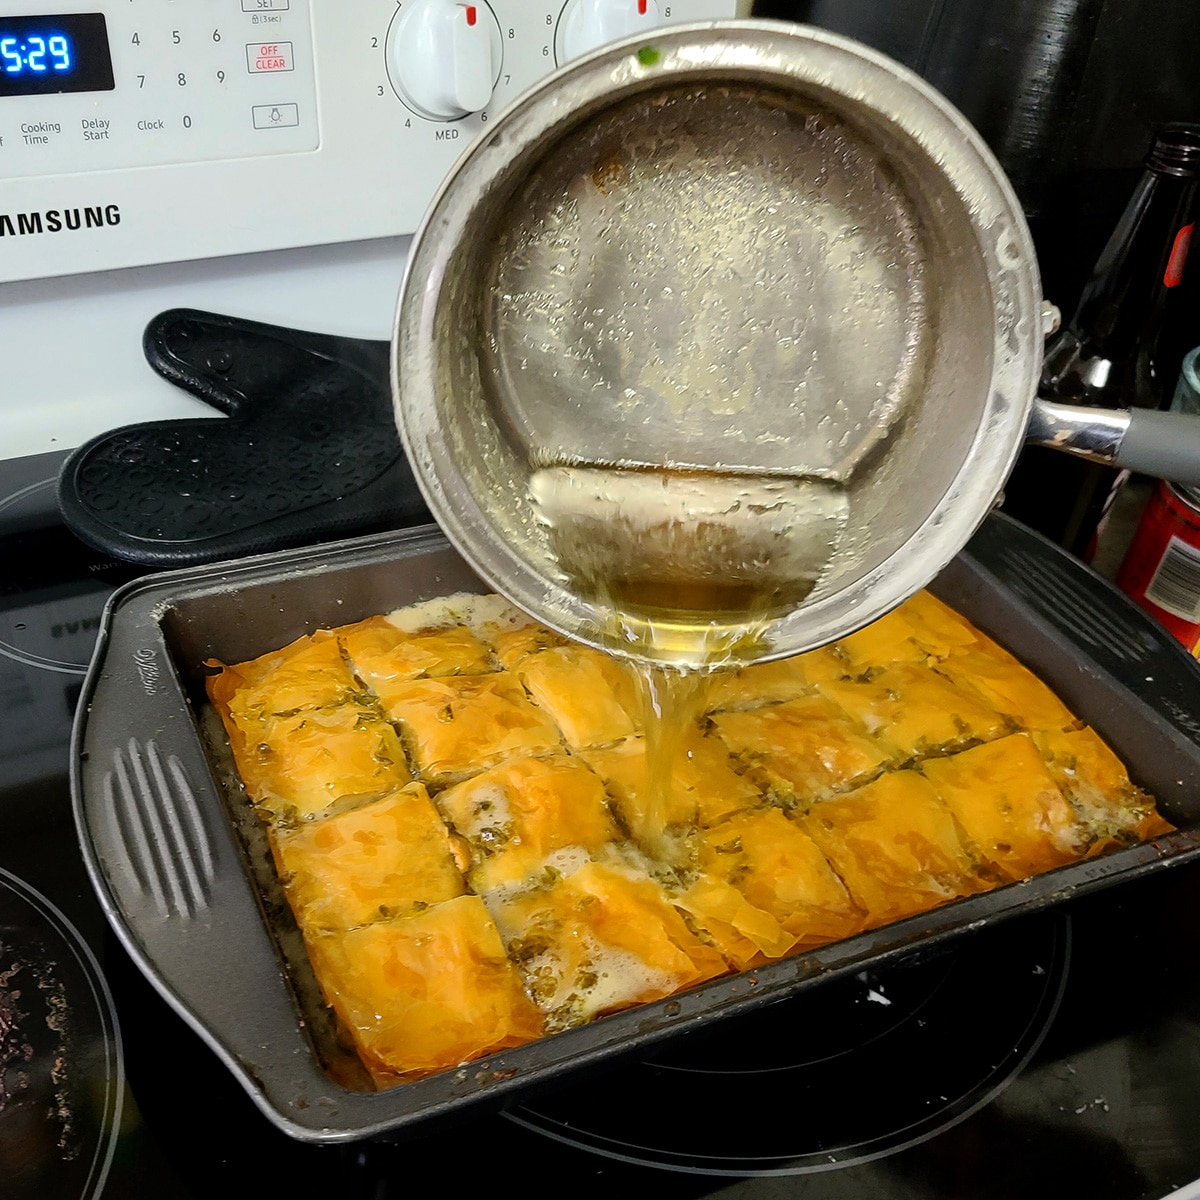 A small pot of honey jalapeno beer mixture being poured over the baked baklava.